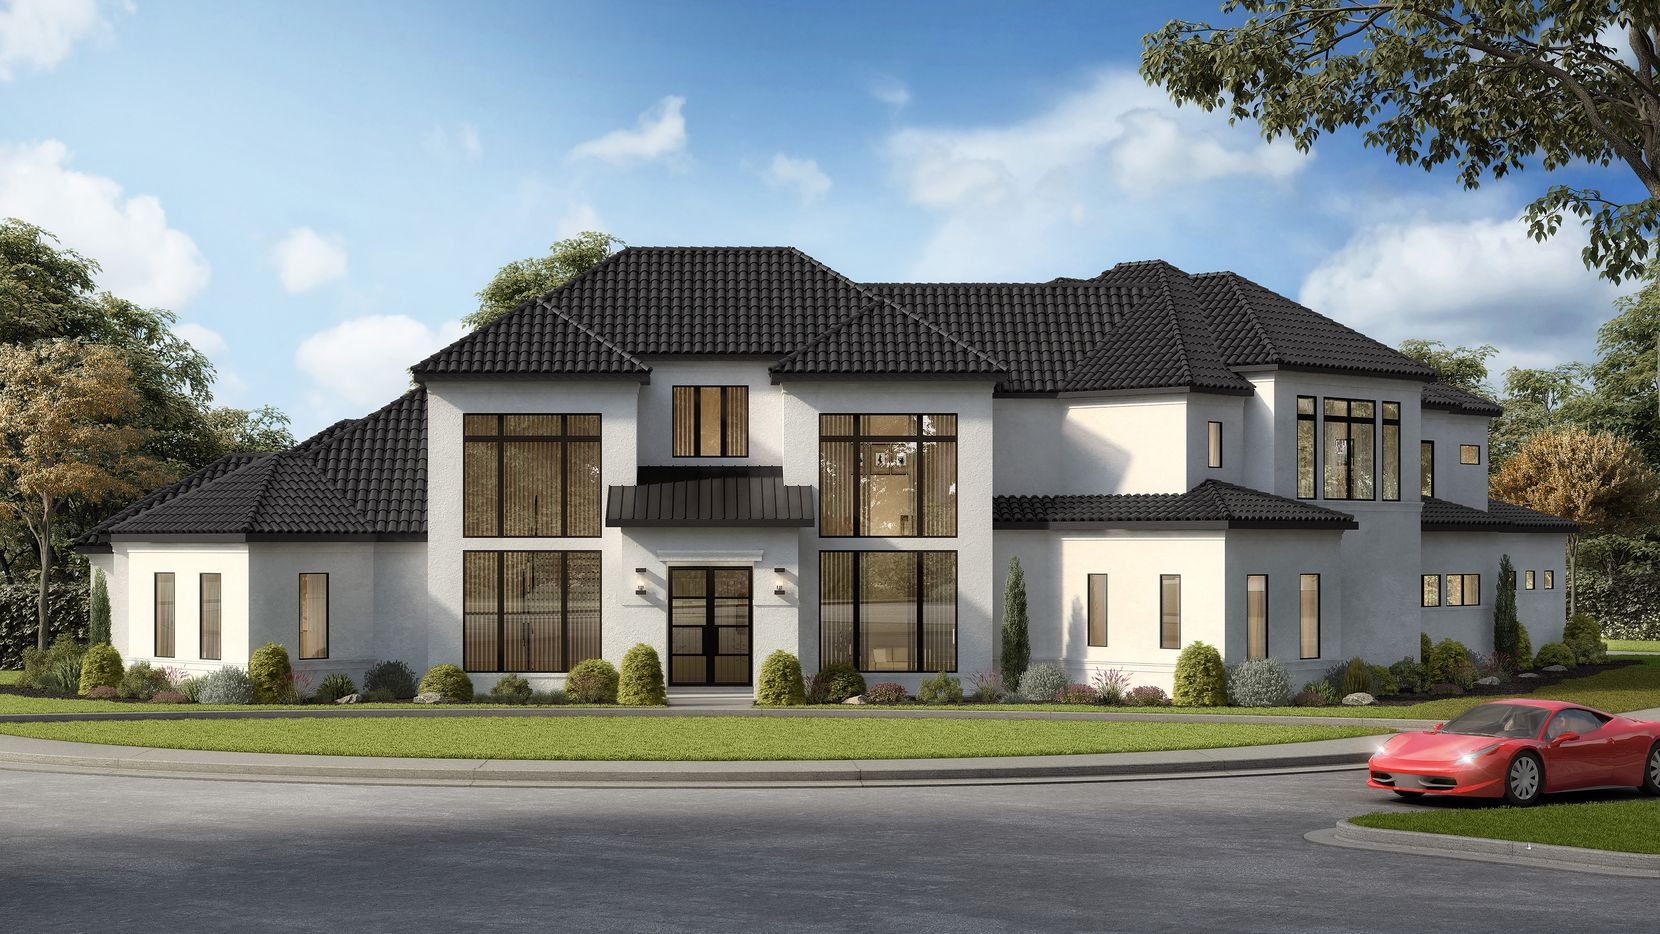 The home design at 2396 Courtland at Hills of Kingswood in Frisco will feature more than 8,000 square feet.